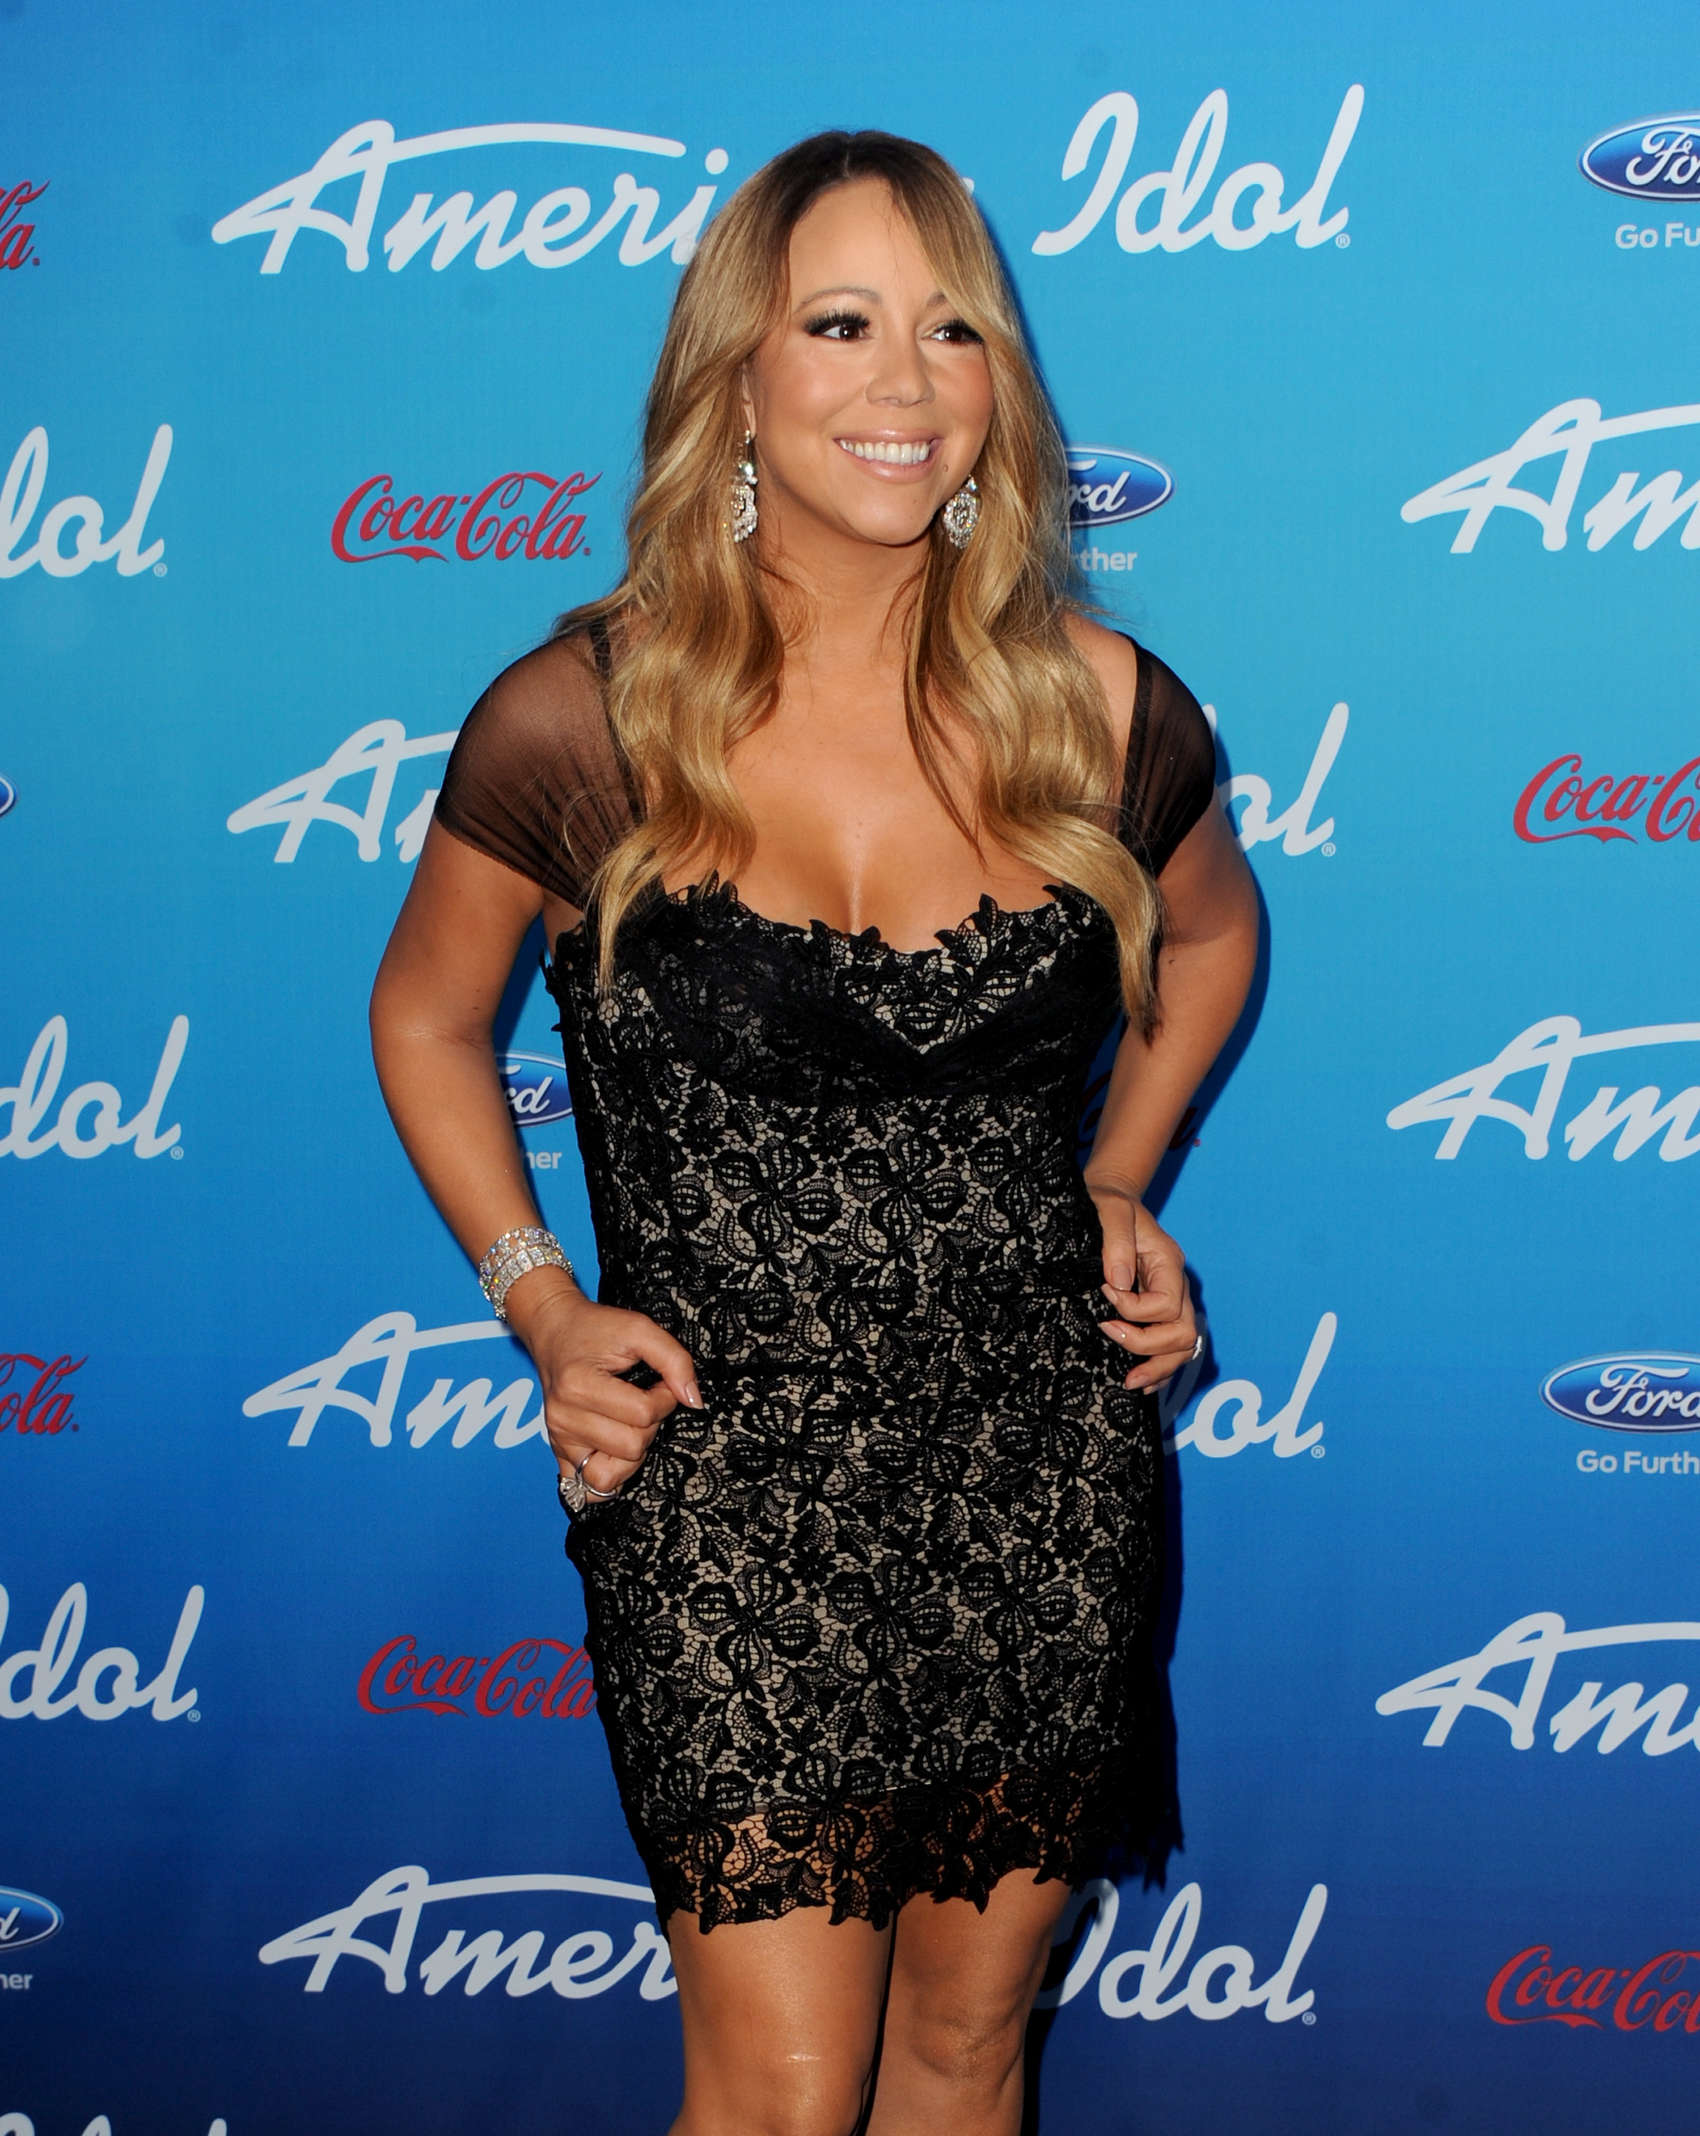 Mariah-Carey-at-the-American-Idol-finalists-event-2013-at-The-Grove--08.jpg